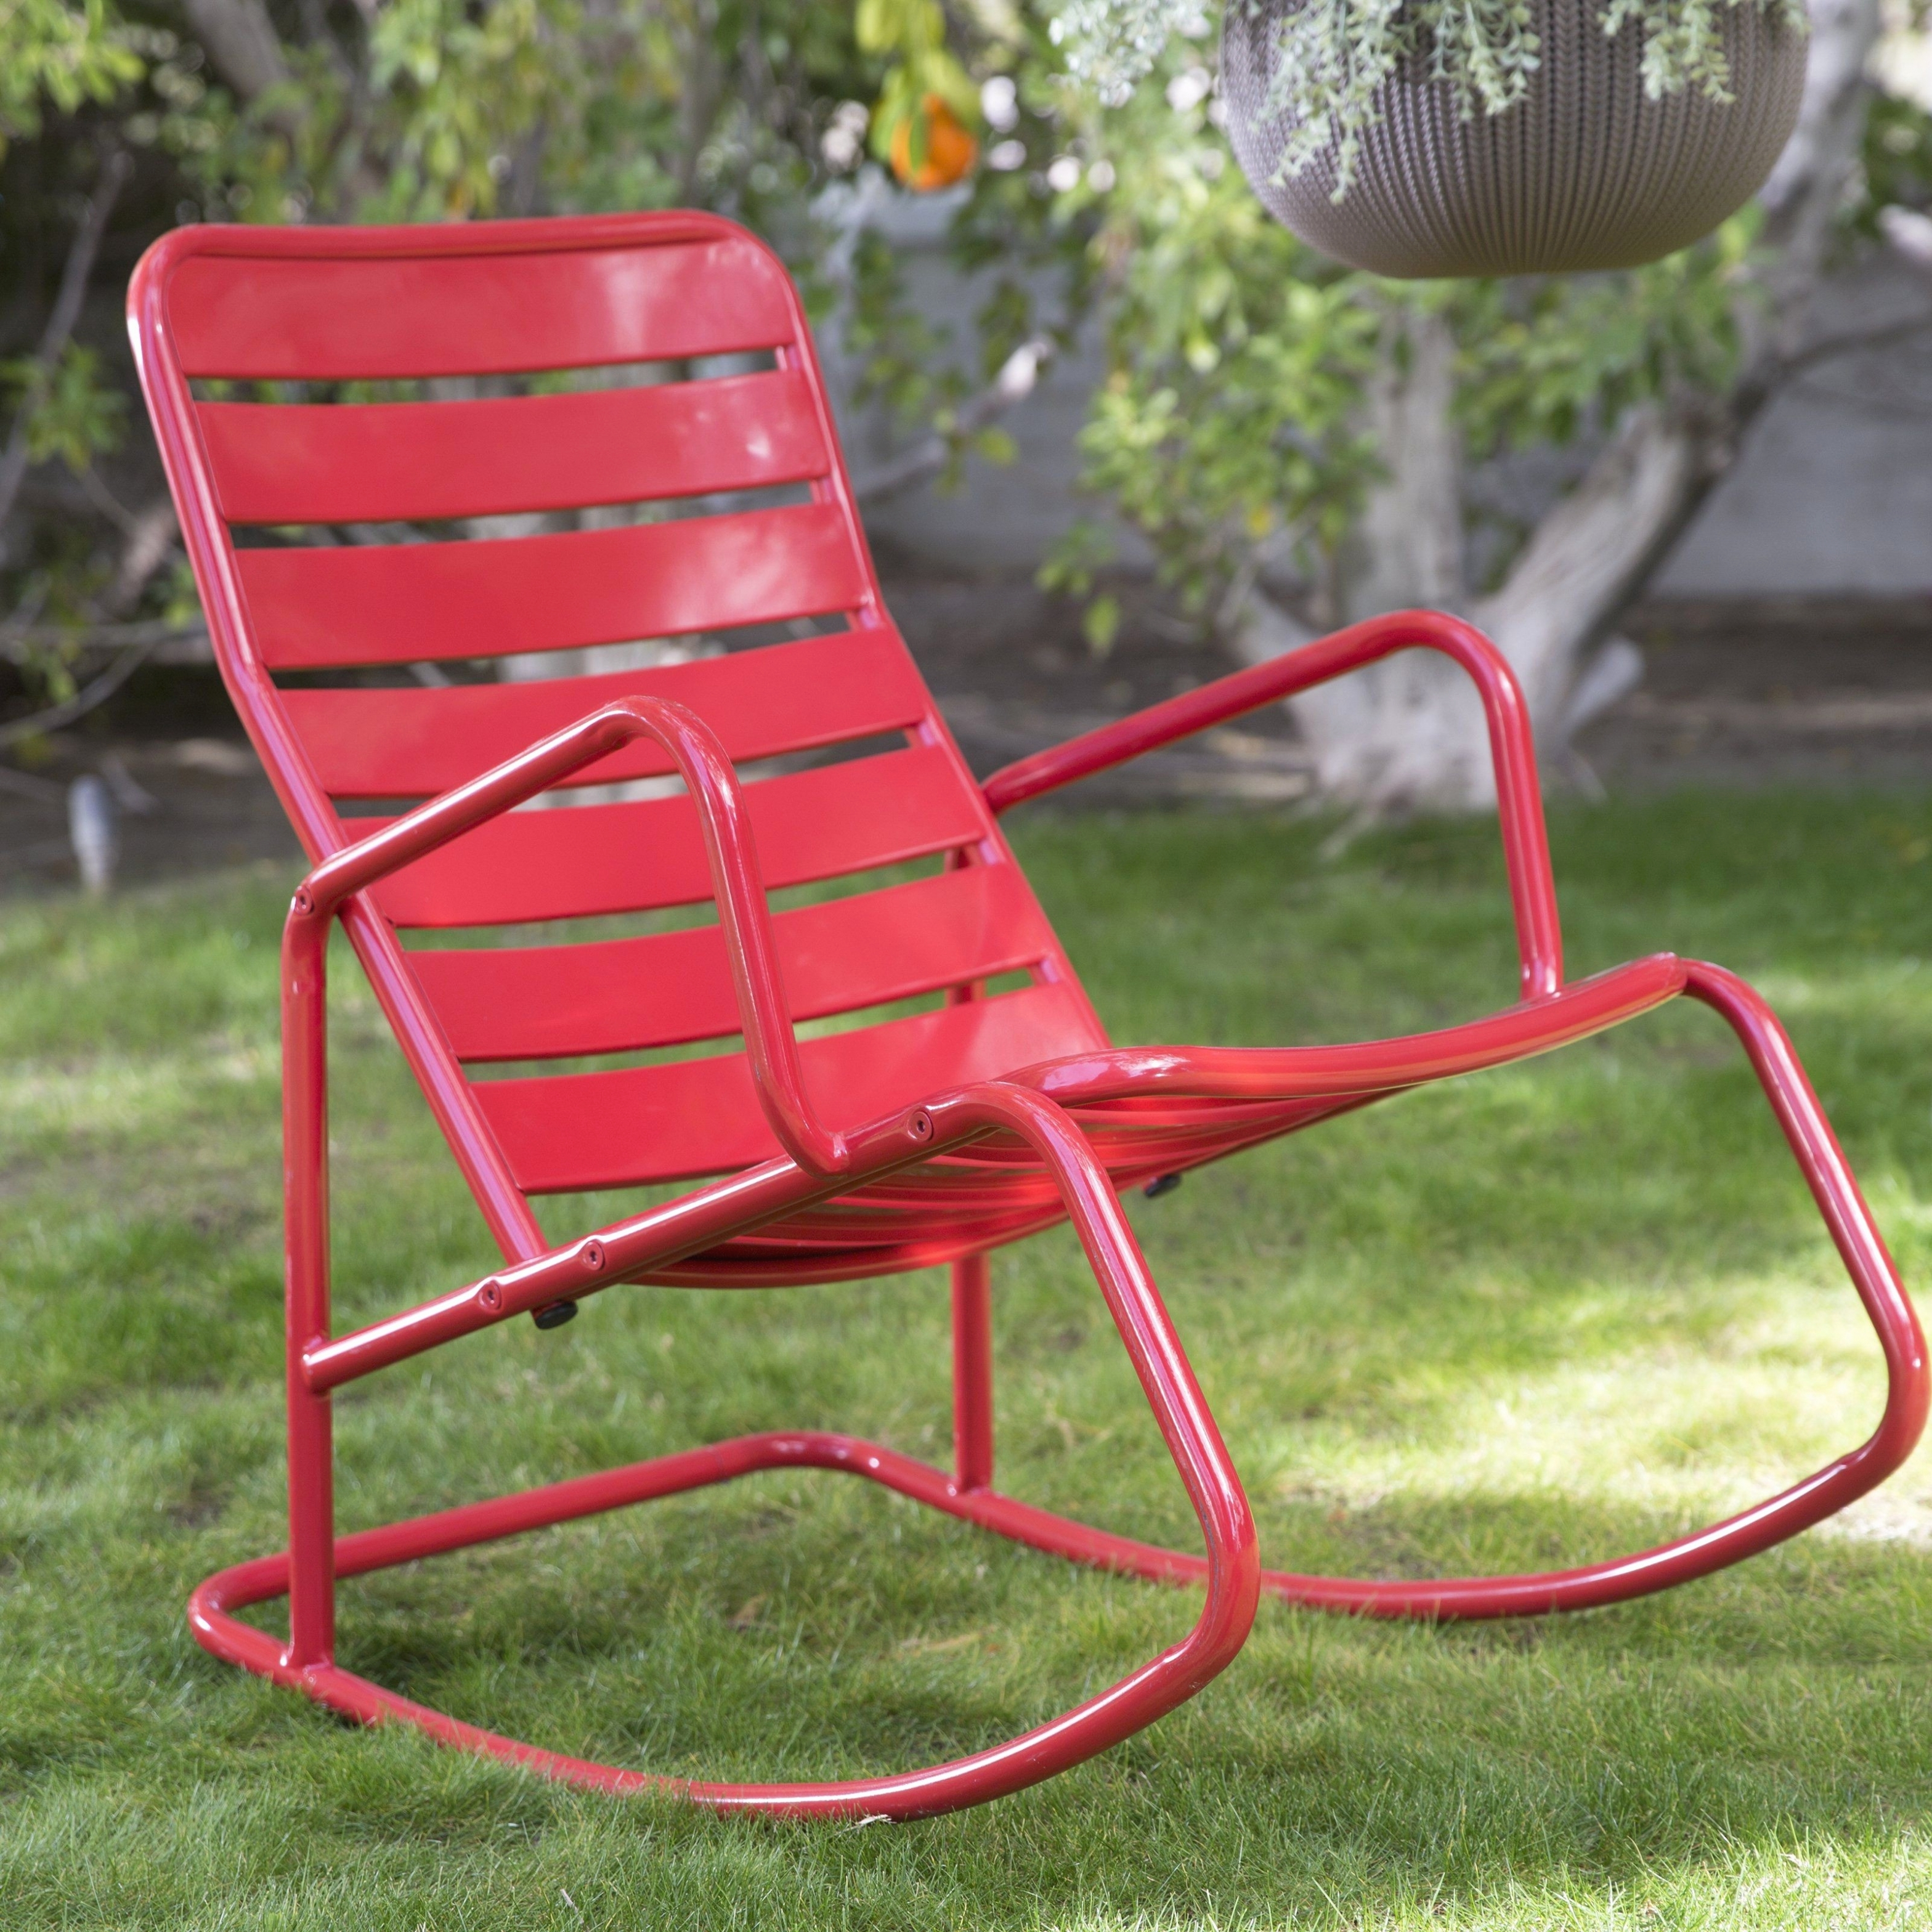 Furniture: 5 Popular Best Outdoor Rocking Chairs 332Ndf In Garden With Regard To Rocking Chairs For Garden (#5 of 15)